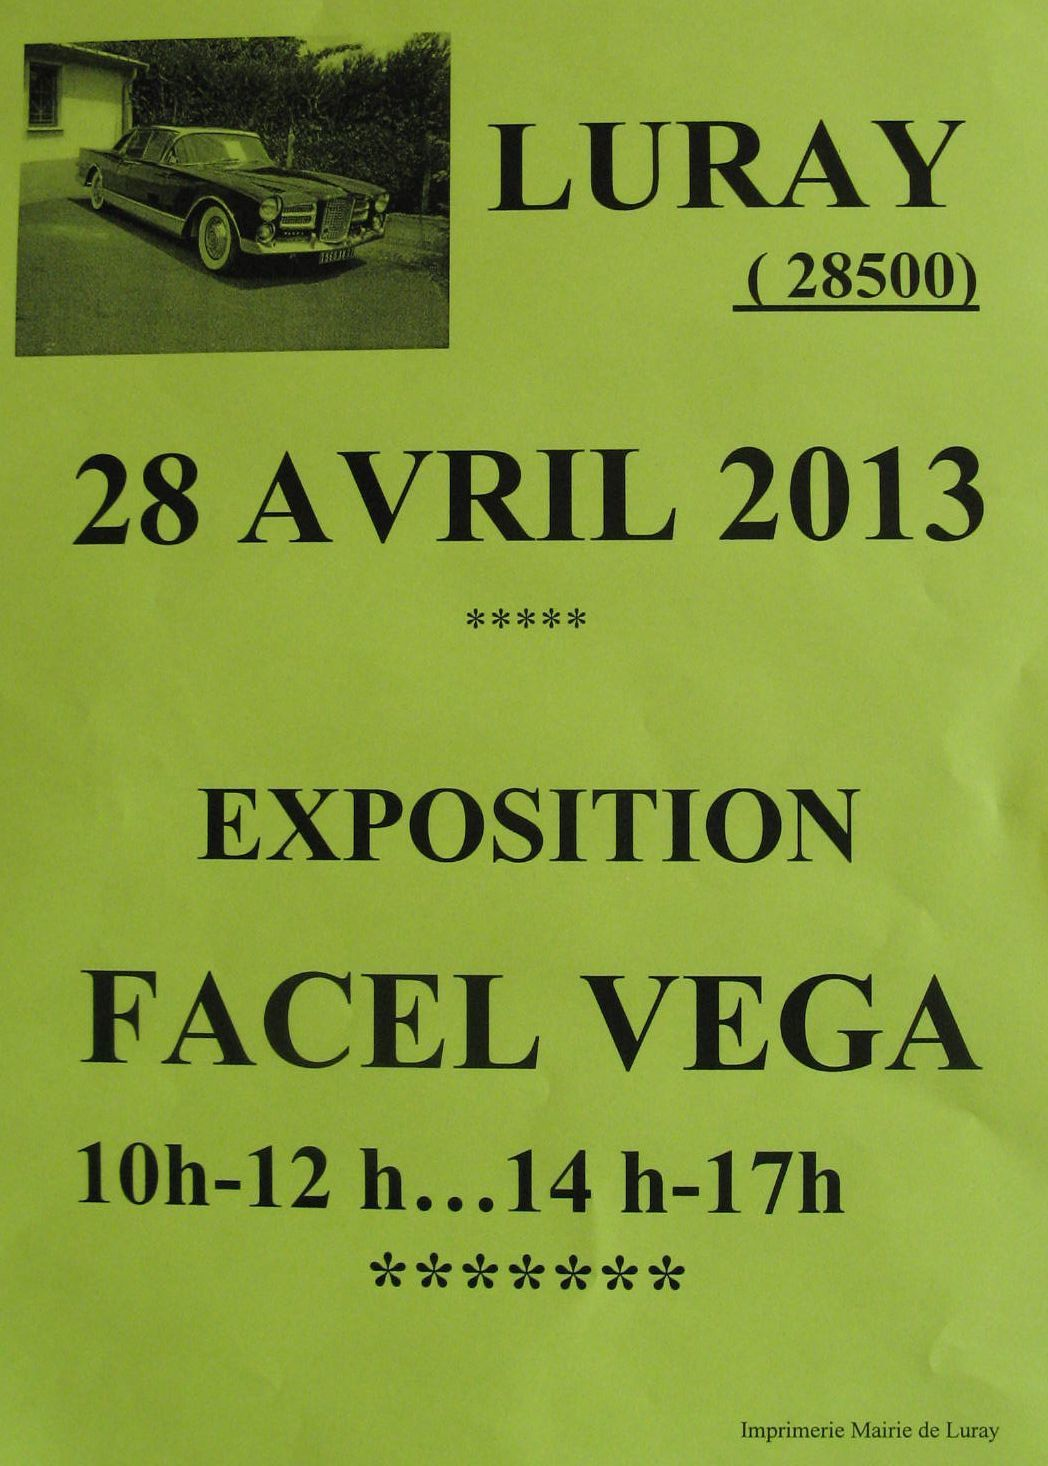 REUNION FACEL VEGA A LURAY